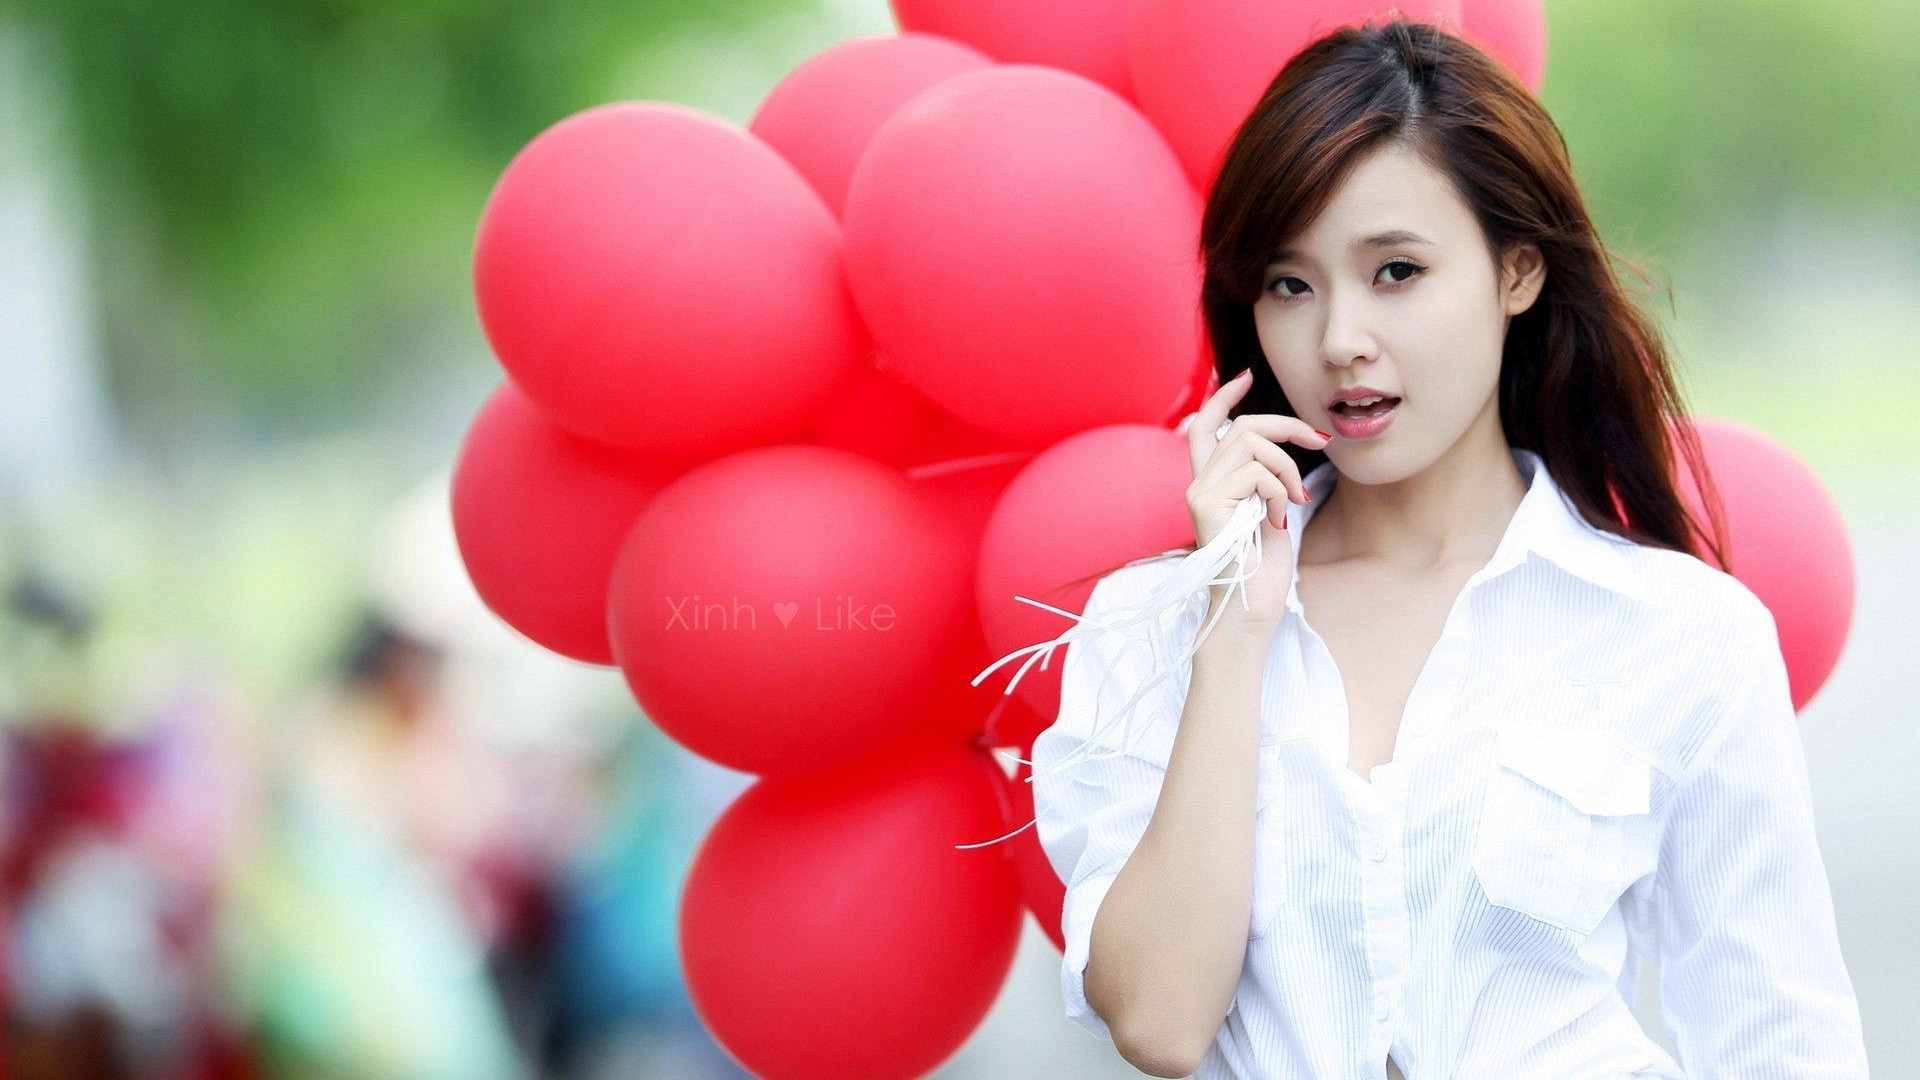 Beautiful girl with balloons wallpaper for Teenage girl wallpapers